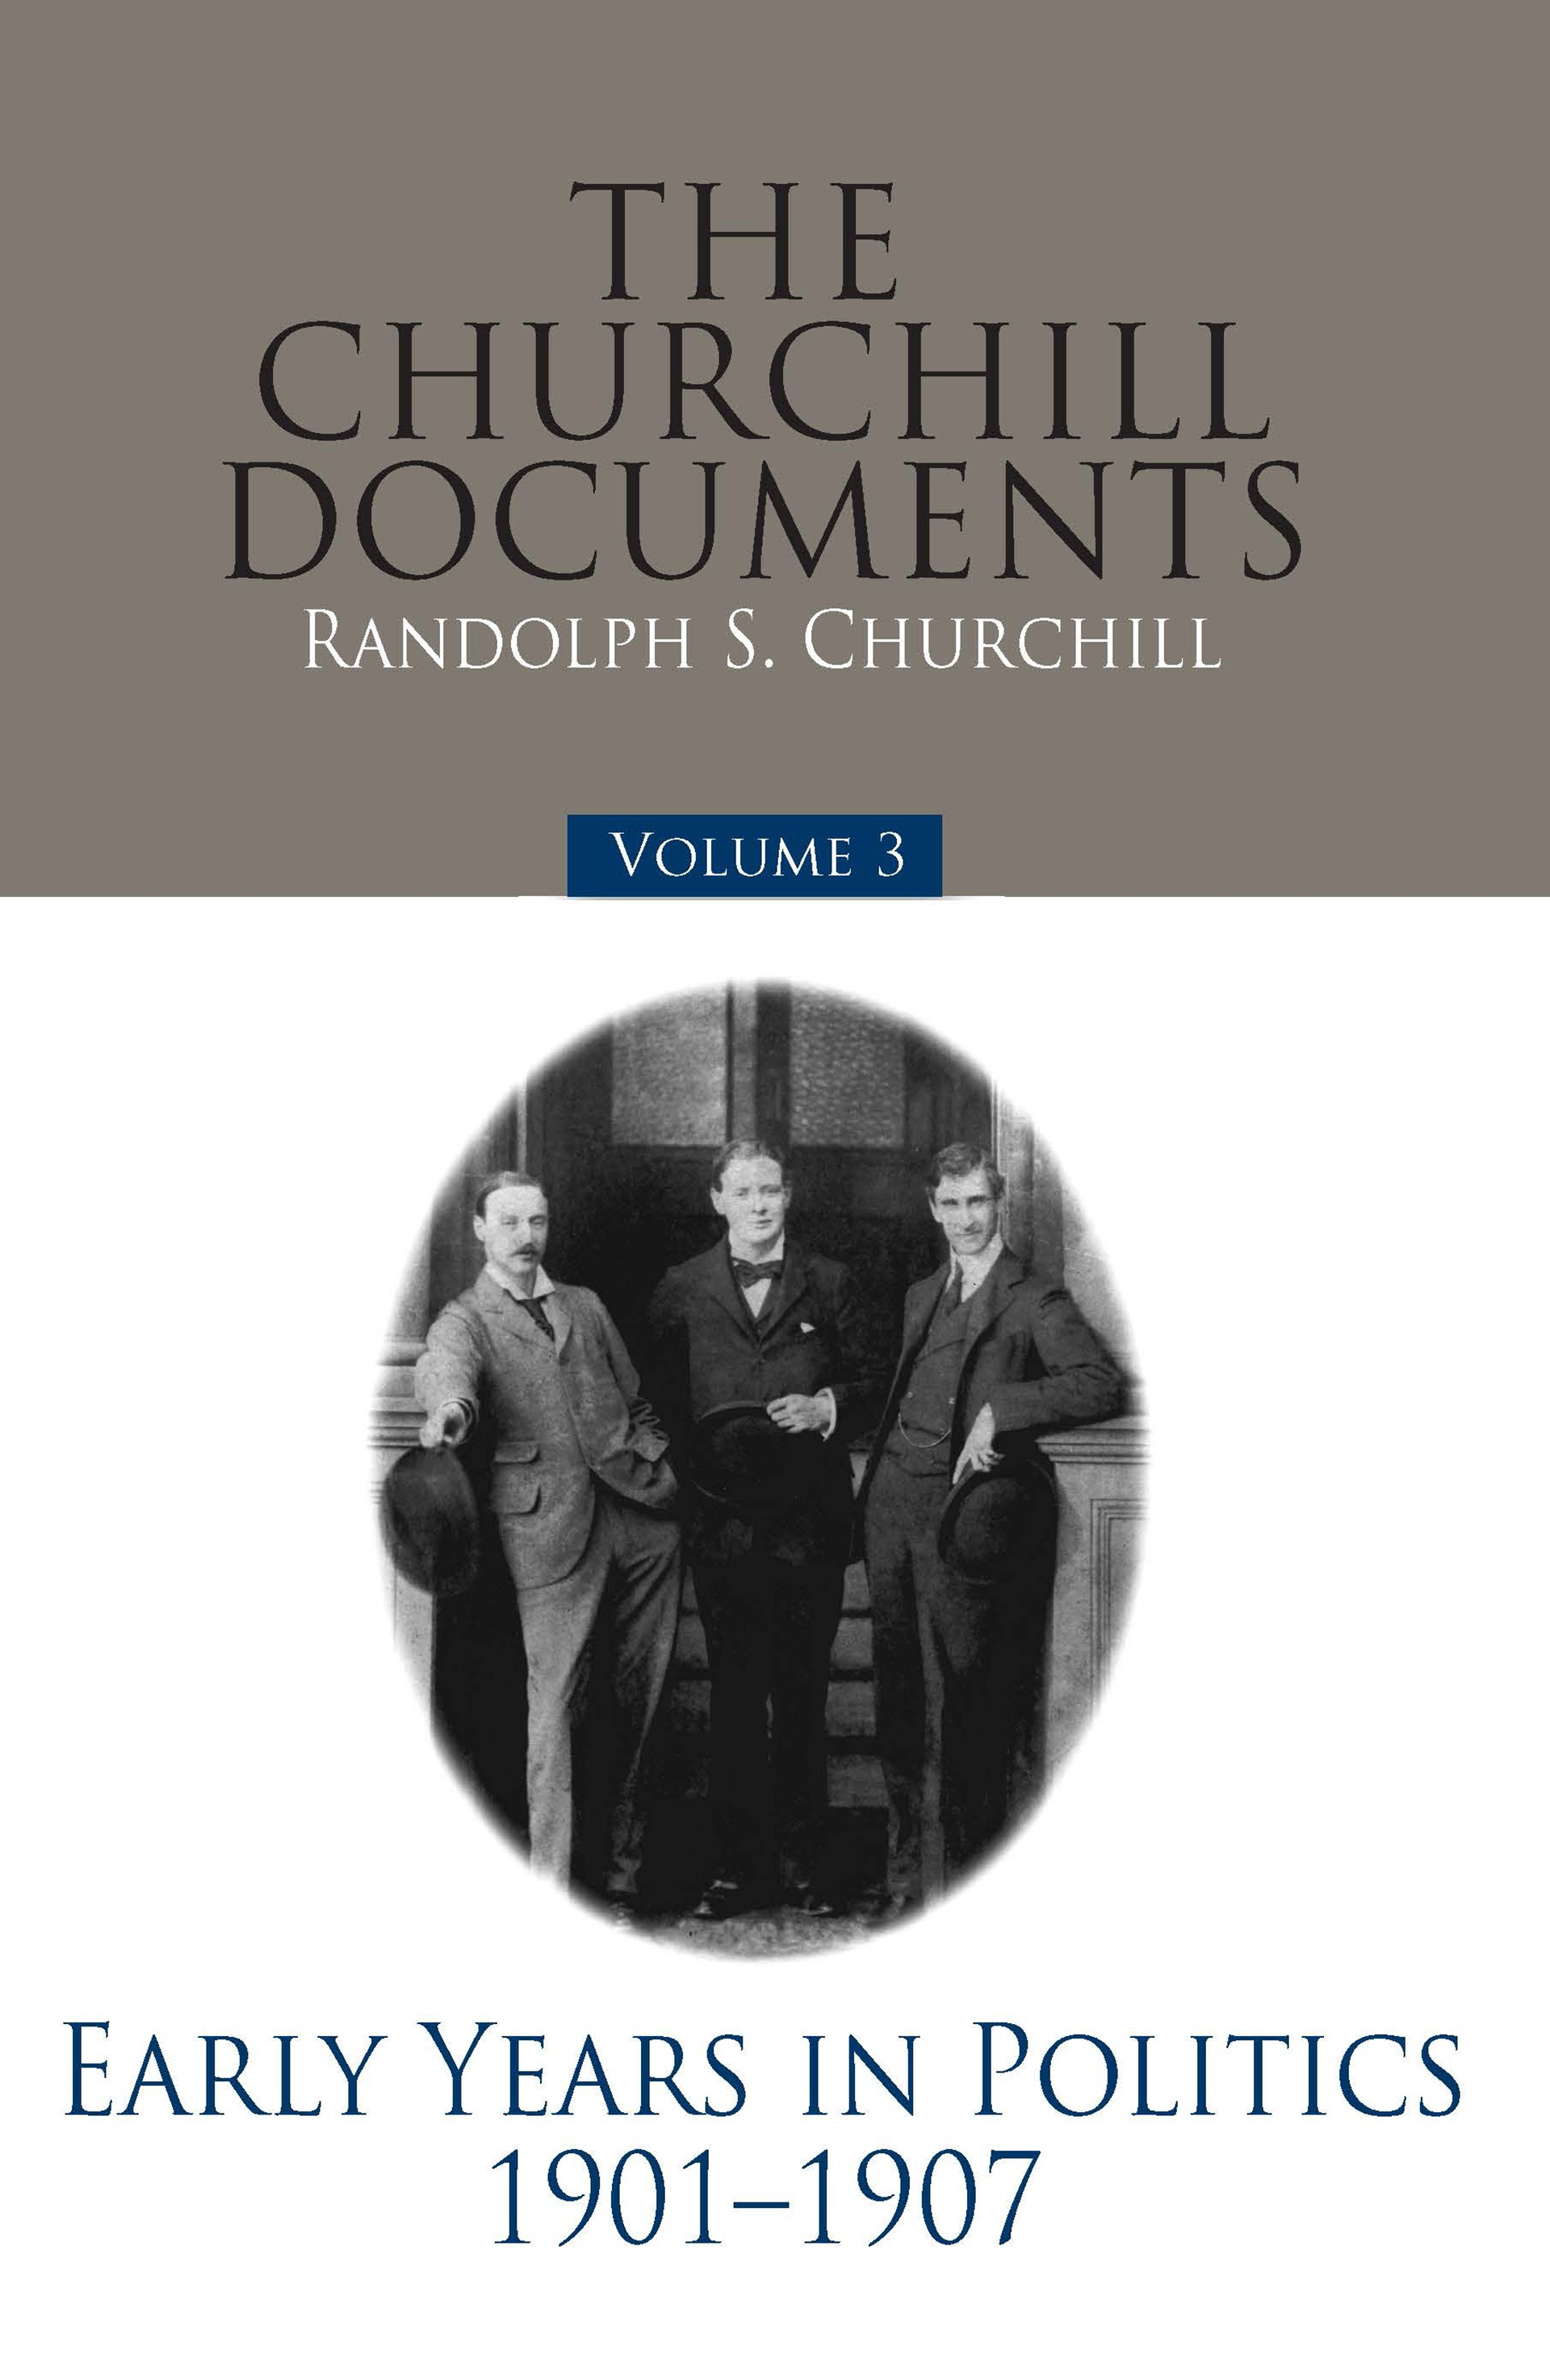 Churchill Documents Vol 3